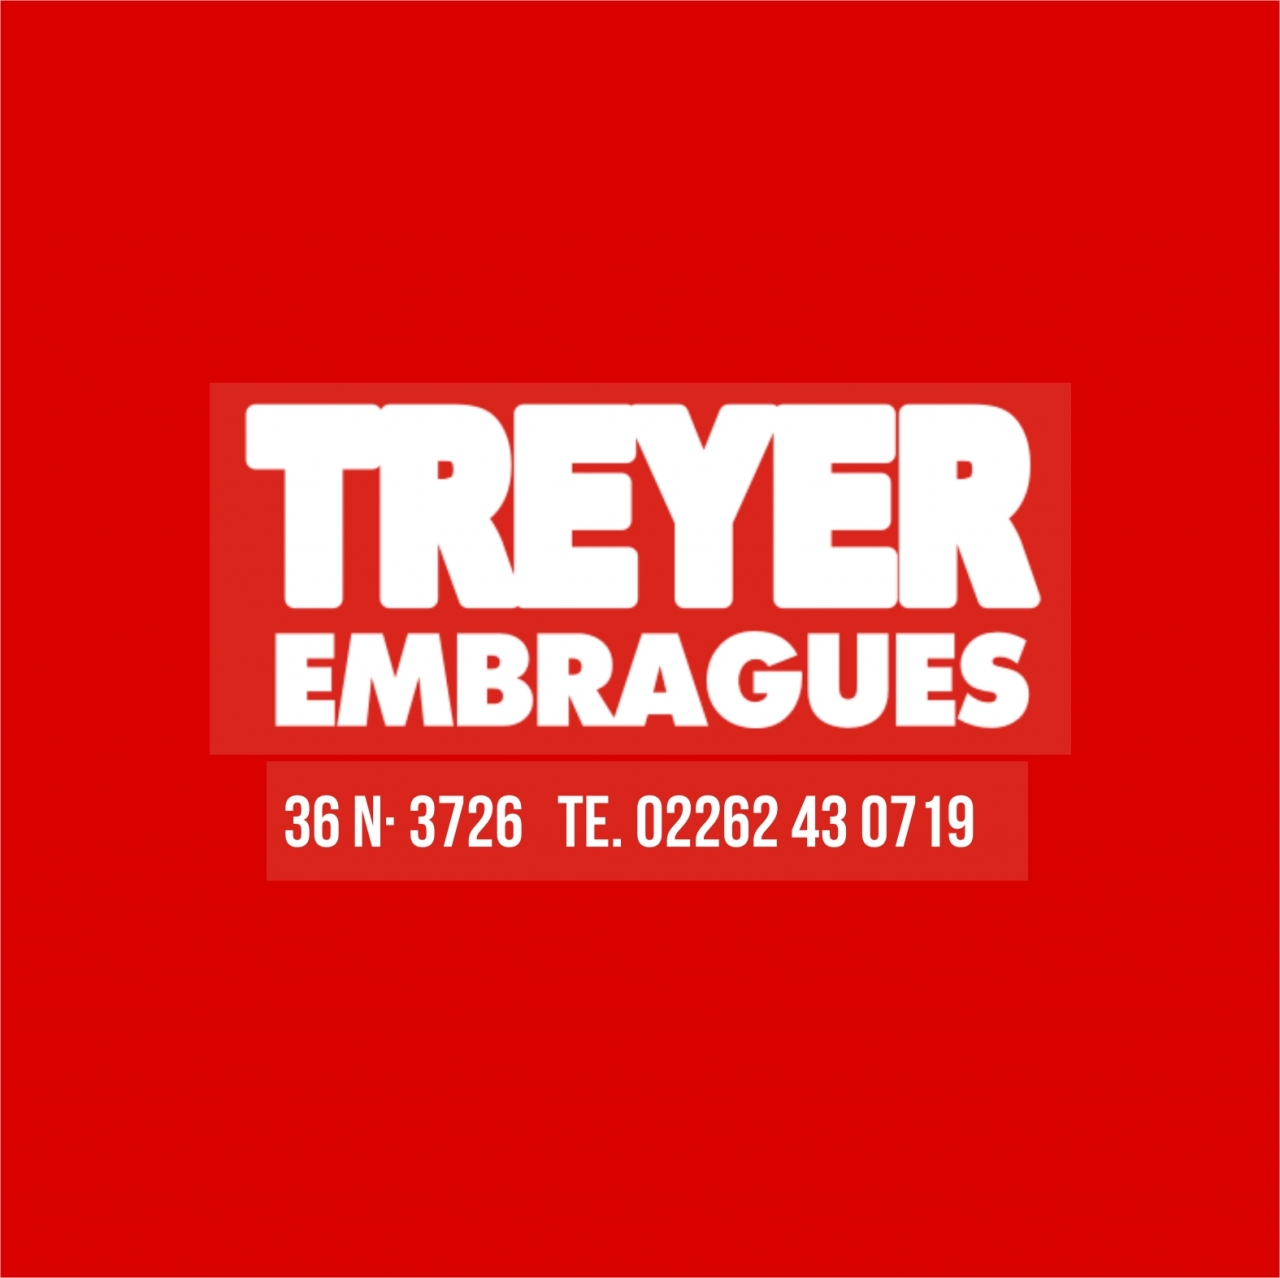 TREYER EMBRAGUES